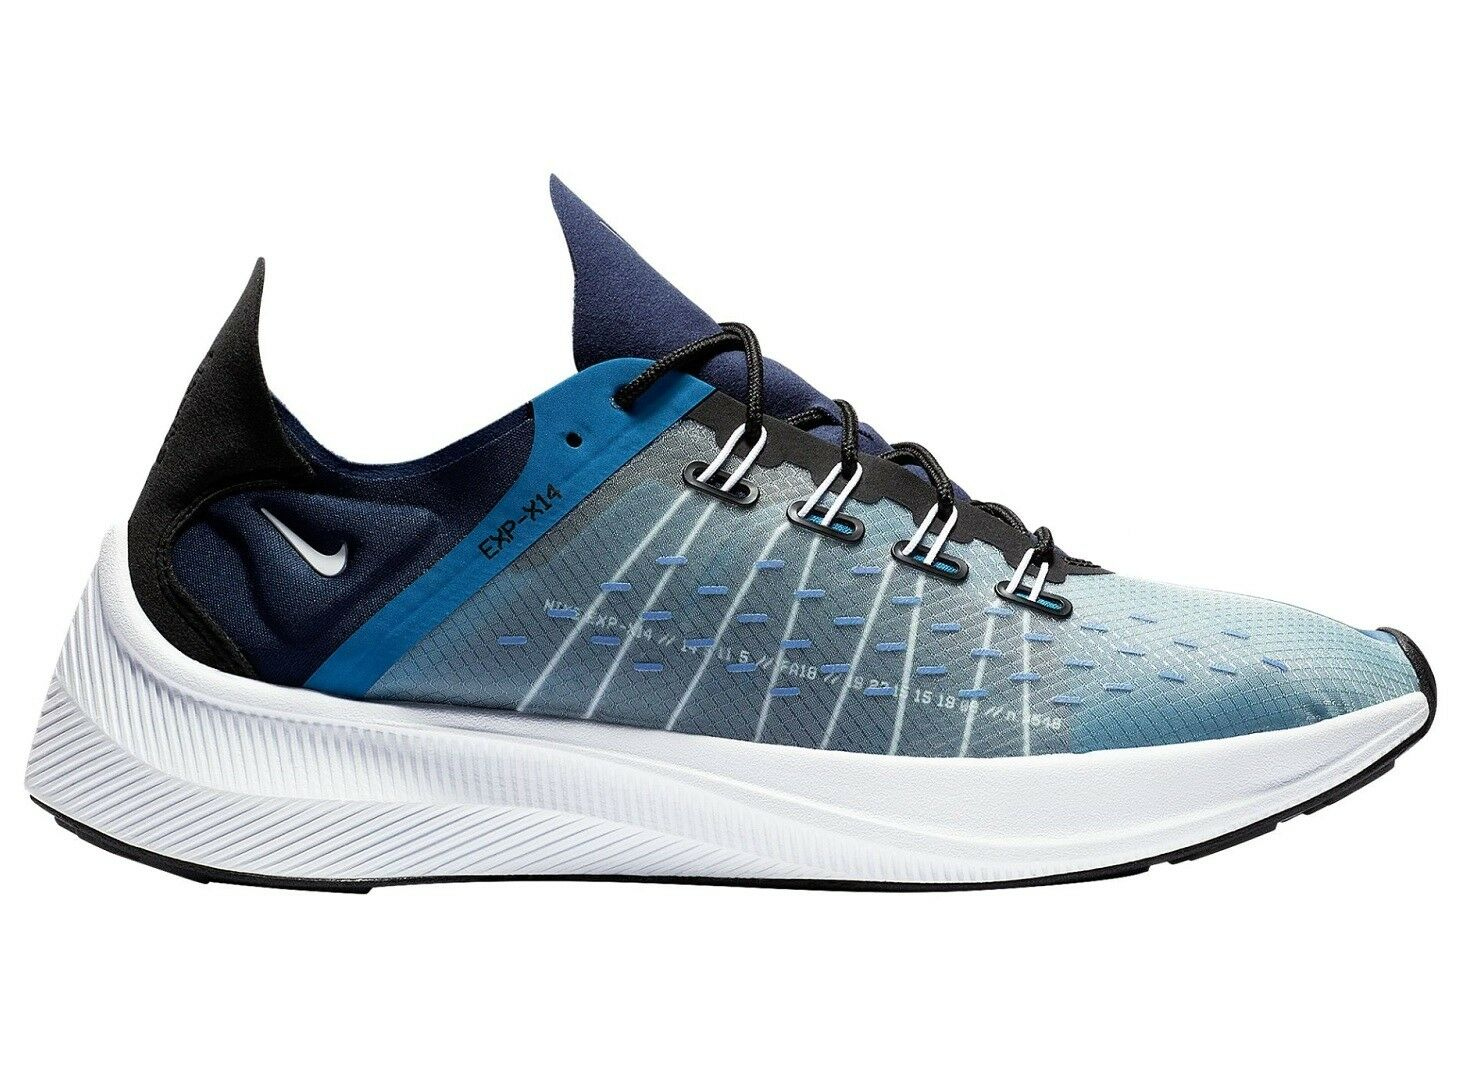 Nike EXP X14 Mens AO1554-401 Mountain Blue Navy Athletic Running Shoes Size 9.5